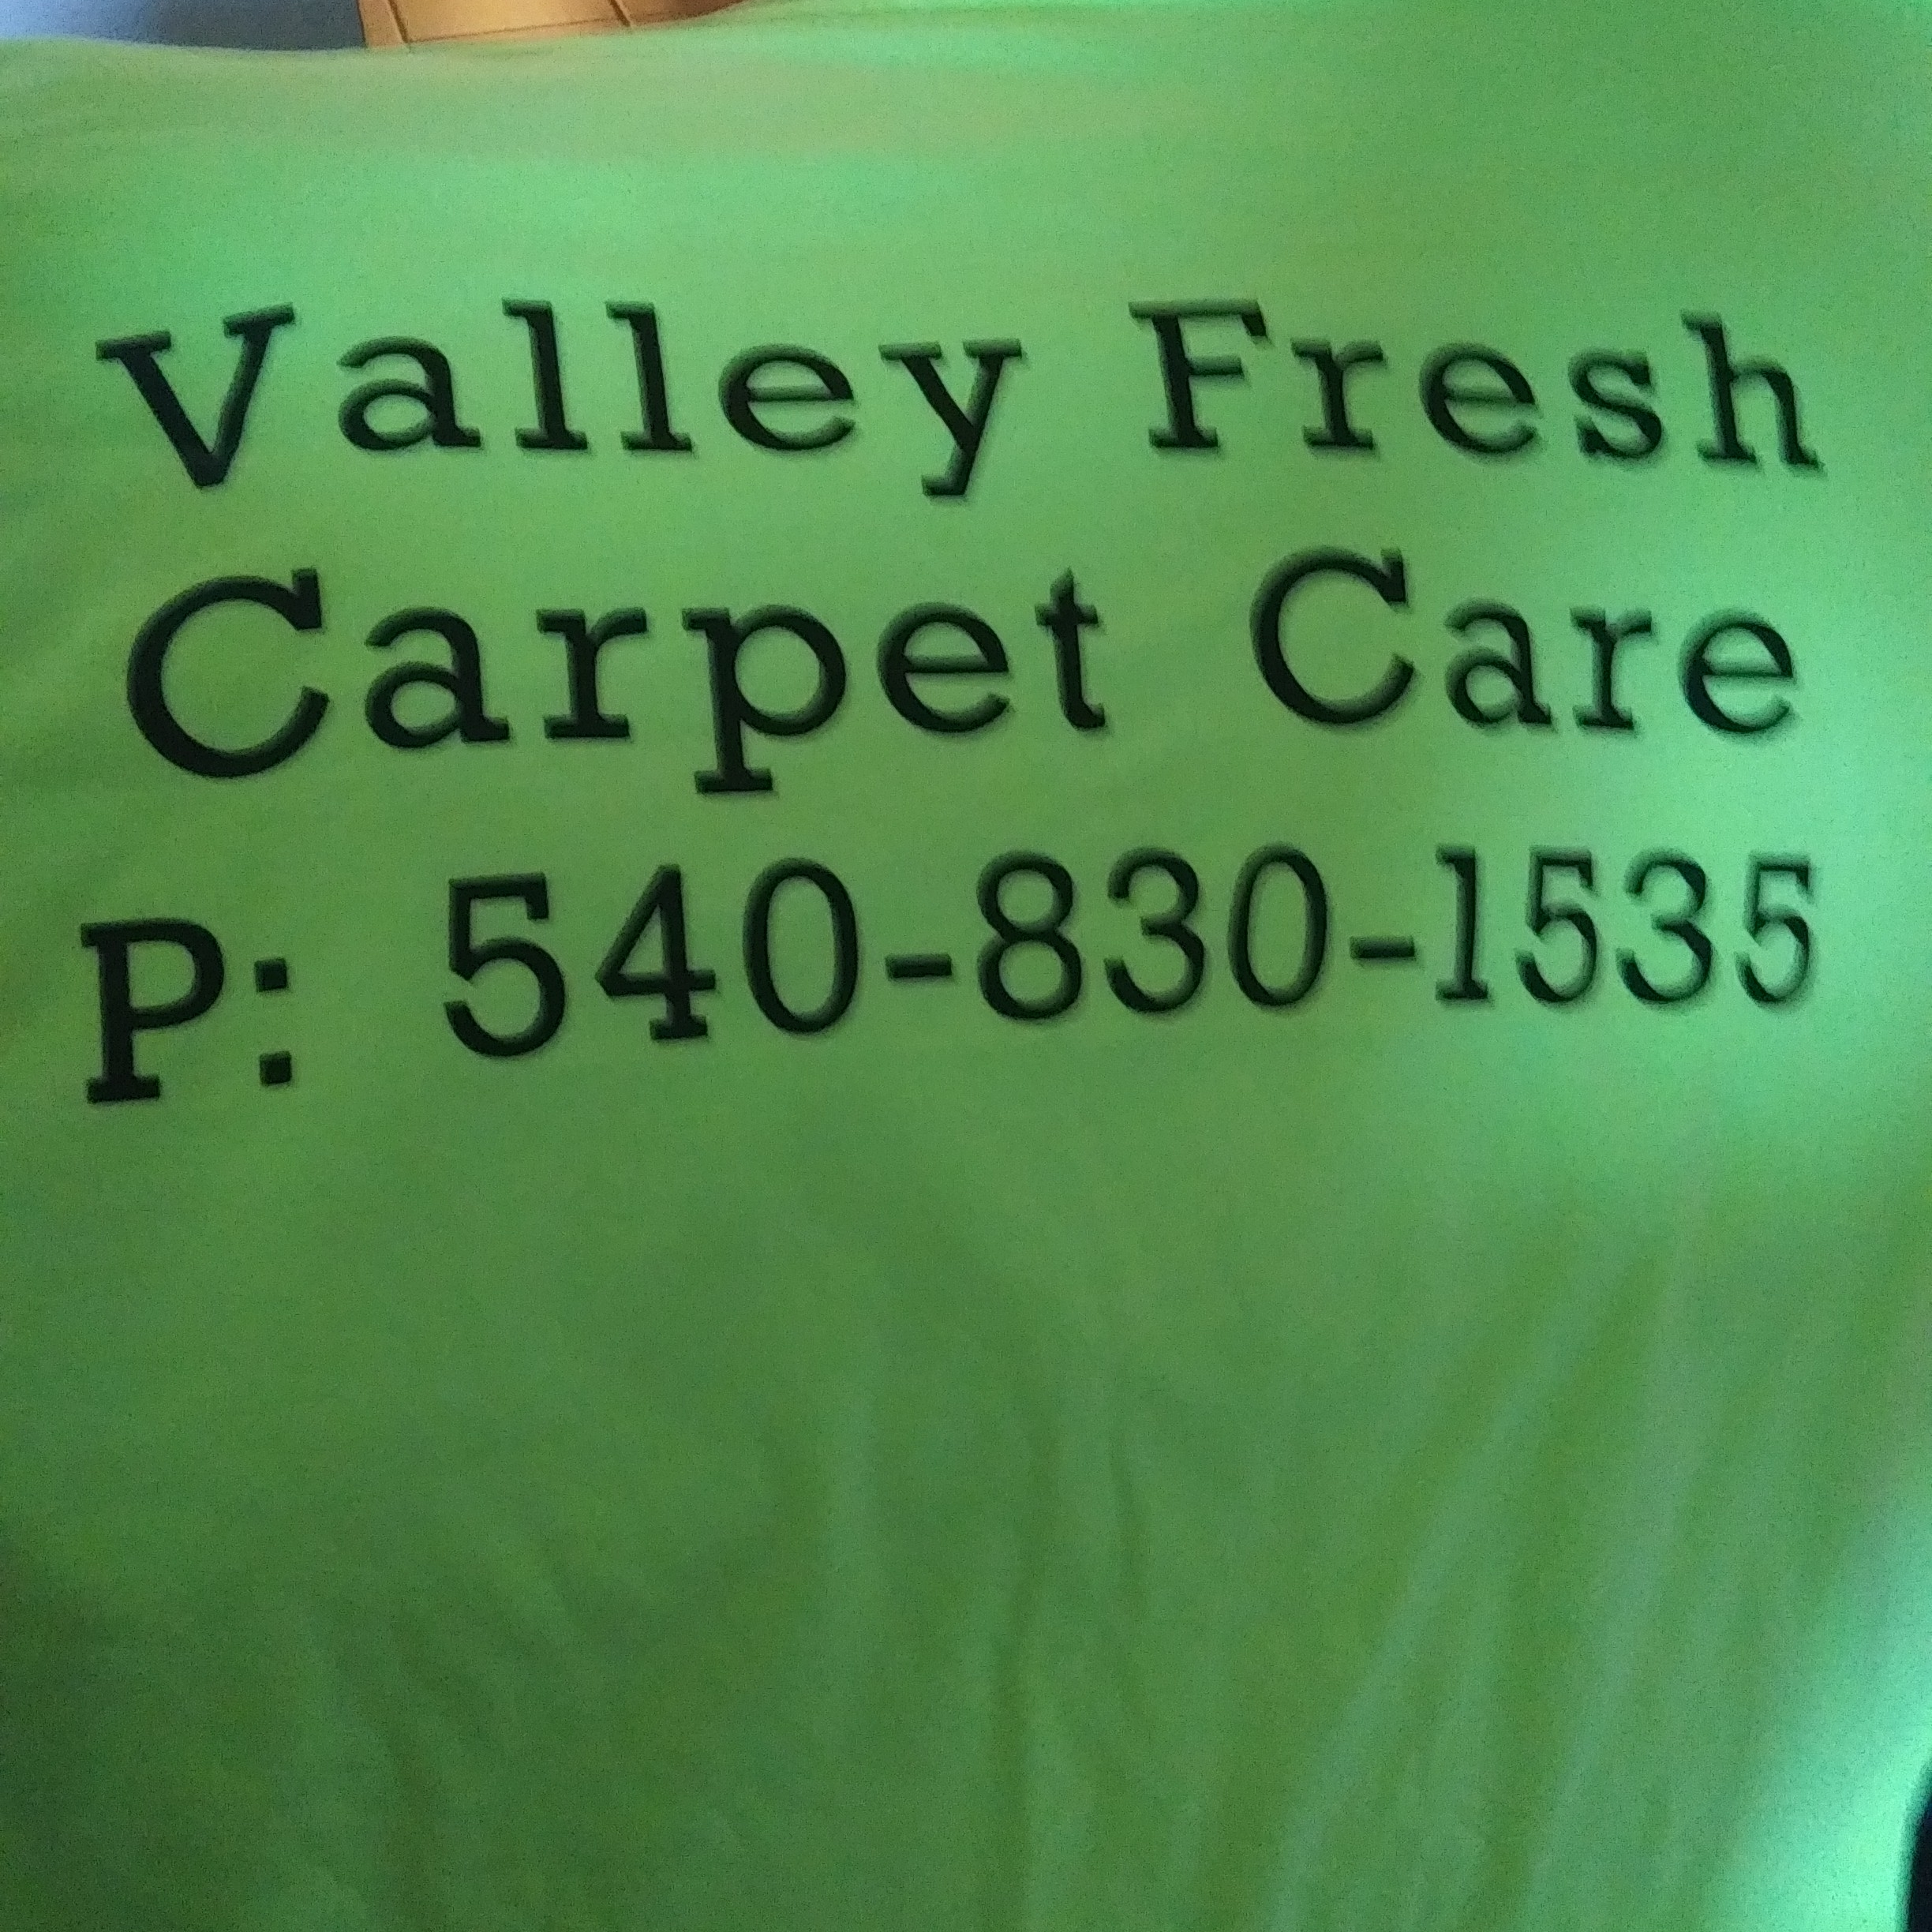 Valley Fresh Carpet Care